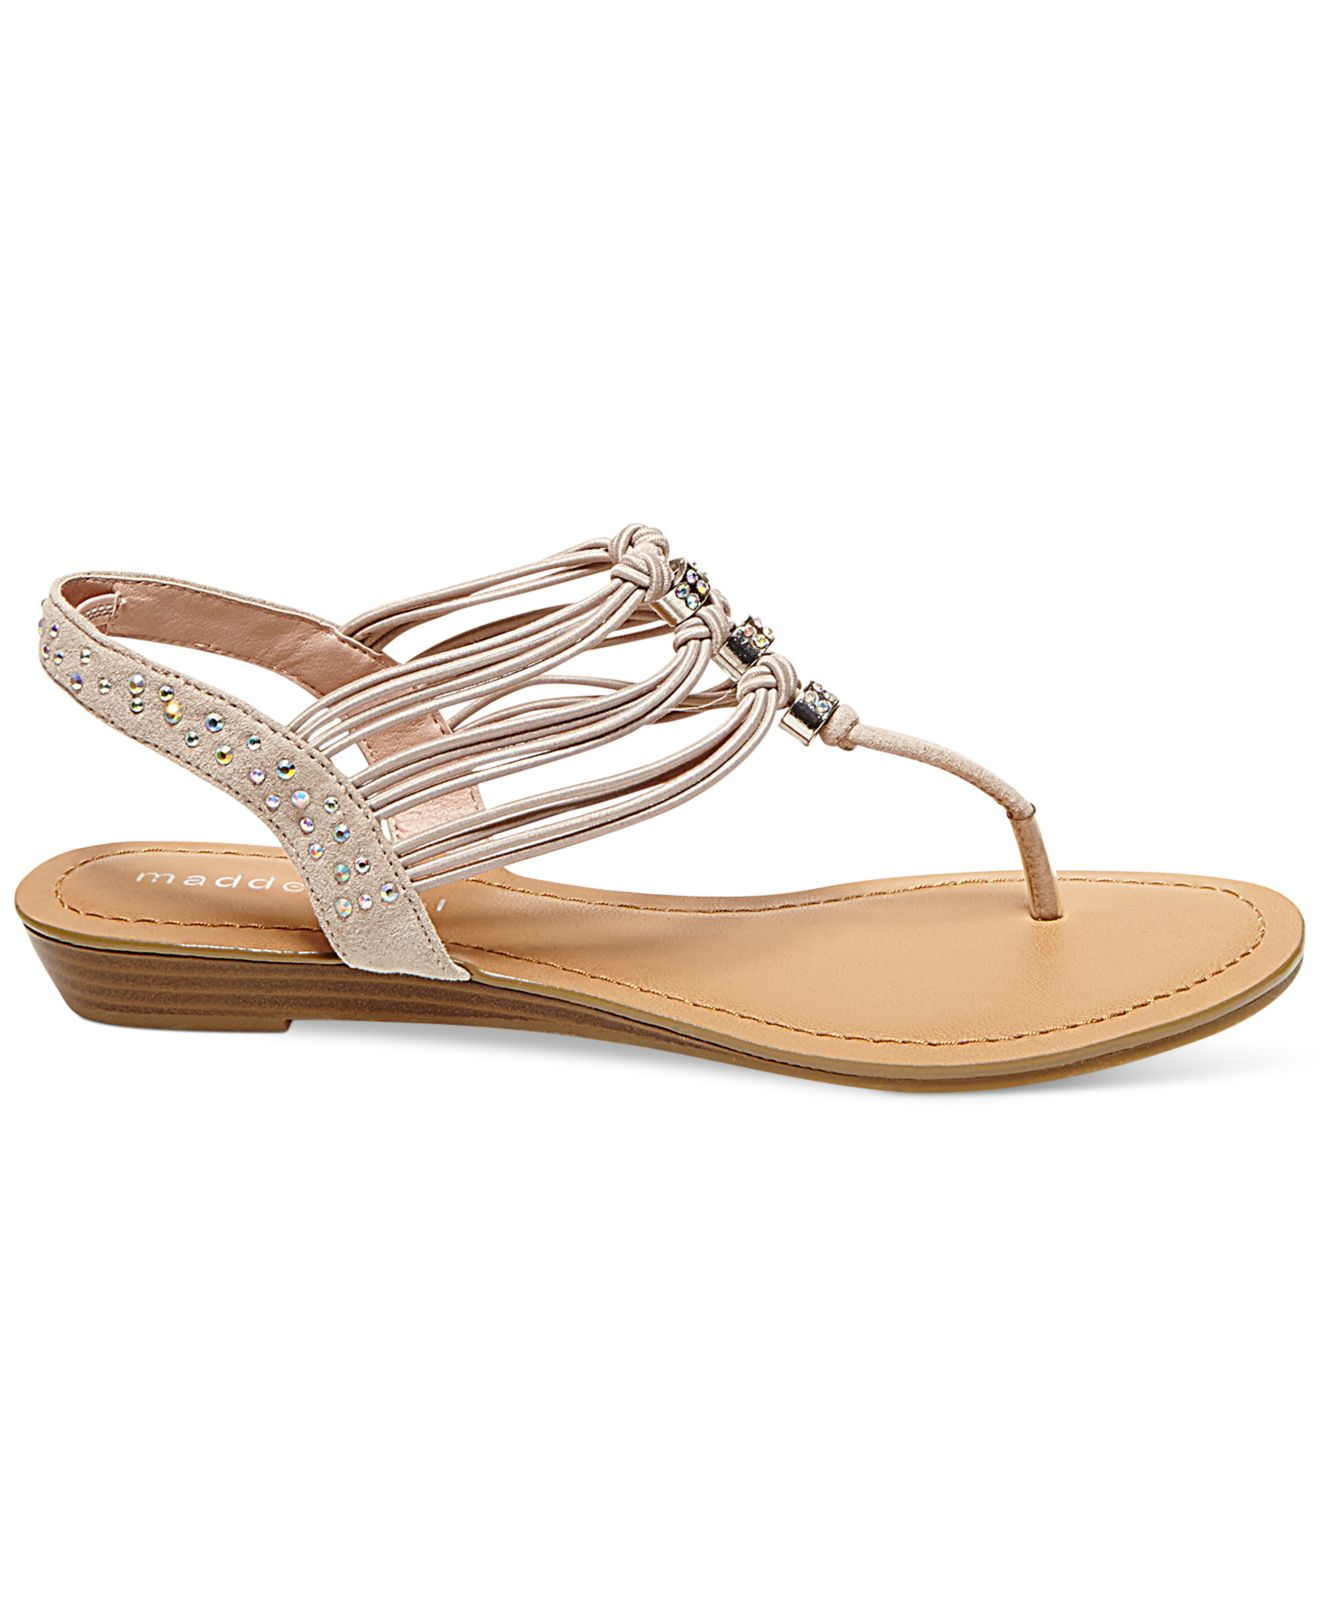 2a009446e20b8 Lyst - Madden Girl Thrill T-strap Flat Thong Sandals in Pink